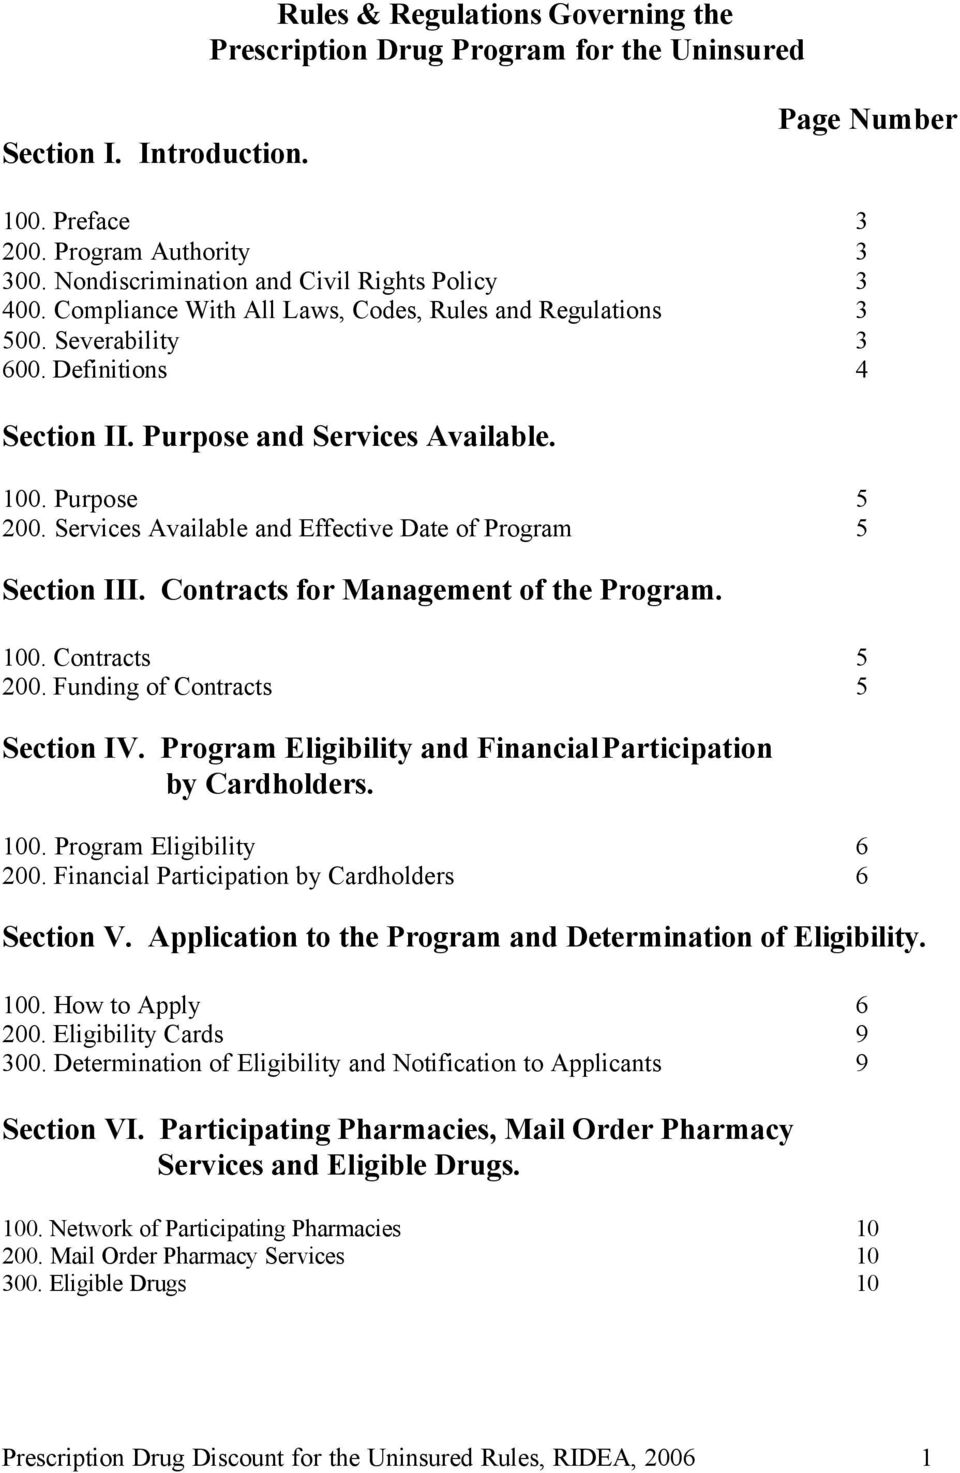 Purpose 5 200. Services Available and Effective Date of Program 5 Section III. Contracts for Management of the Program. 100. Contracts 5 200. Funding of Contracts 5 Section IV.